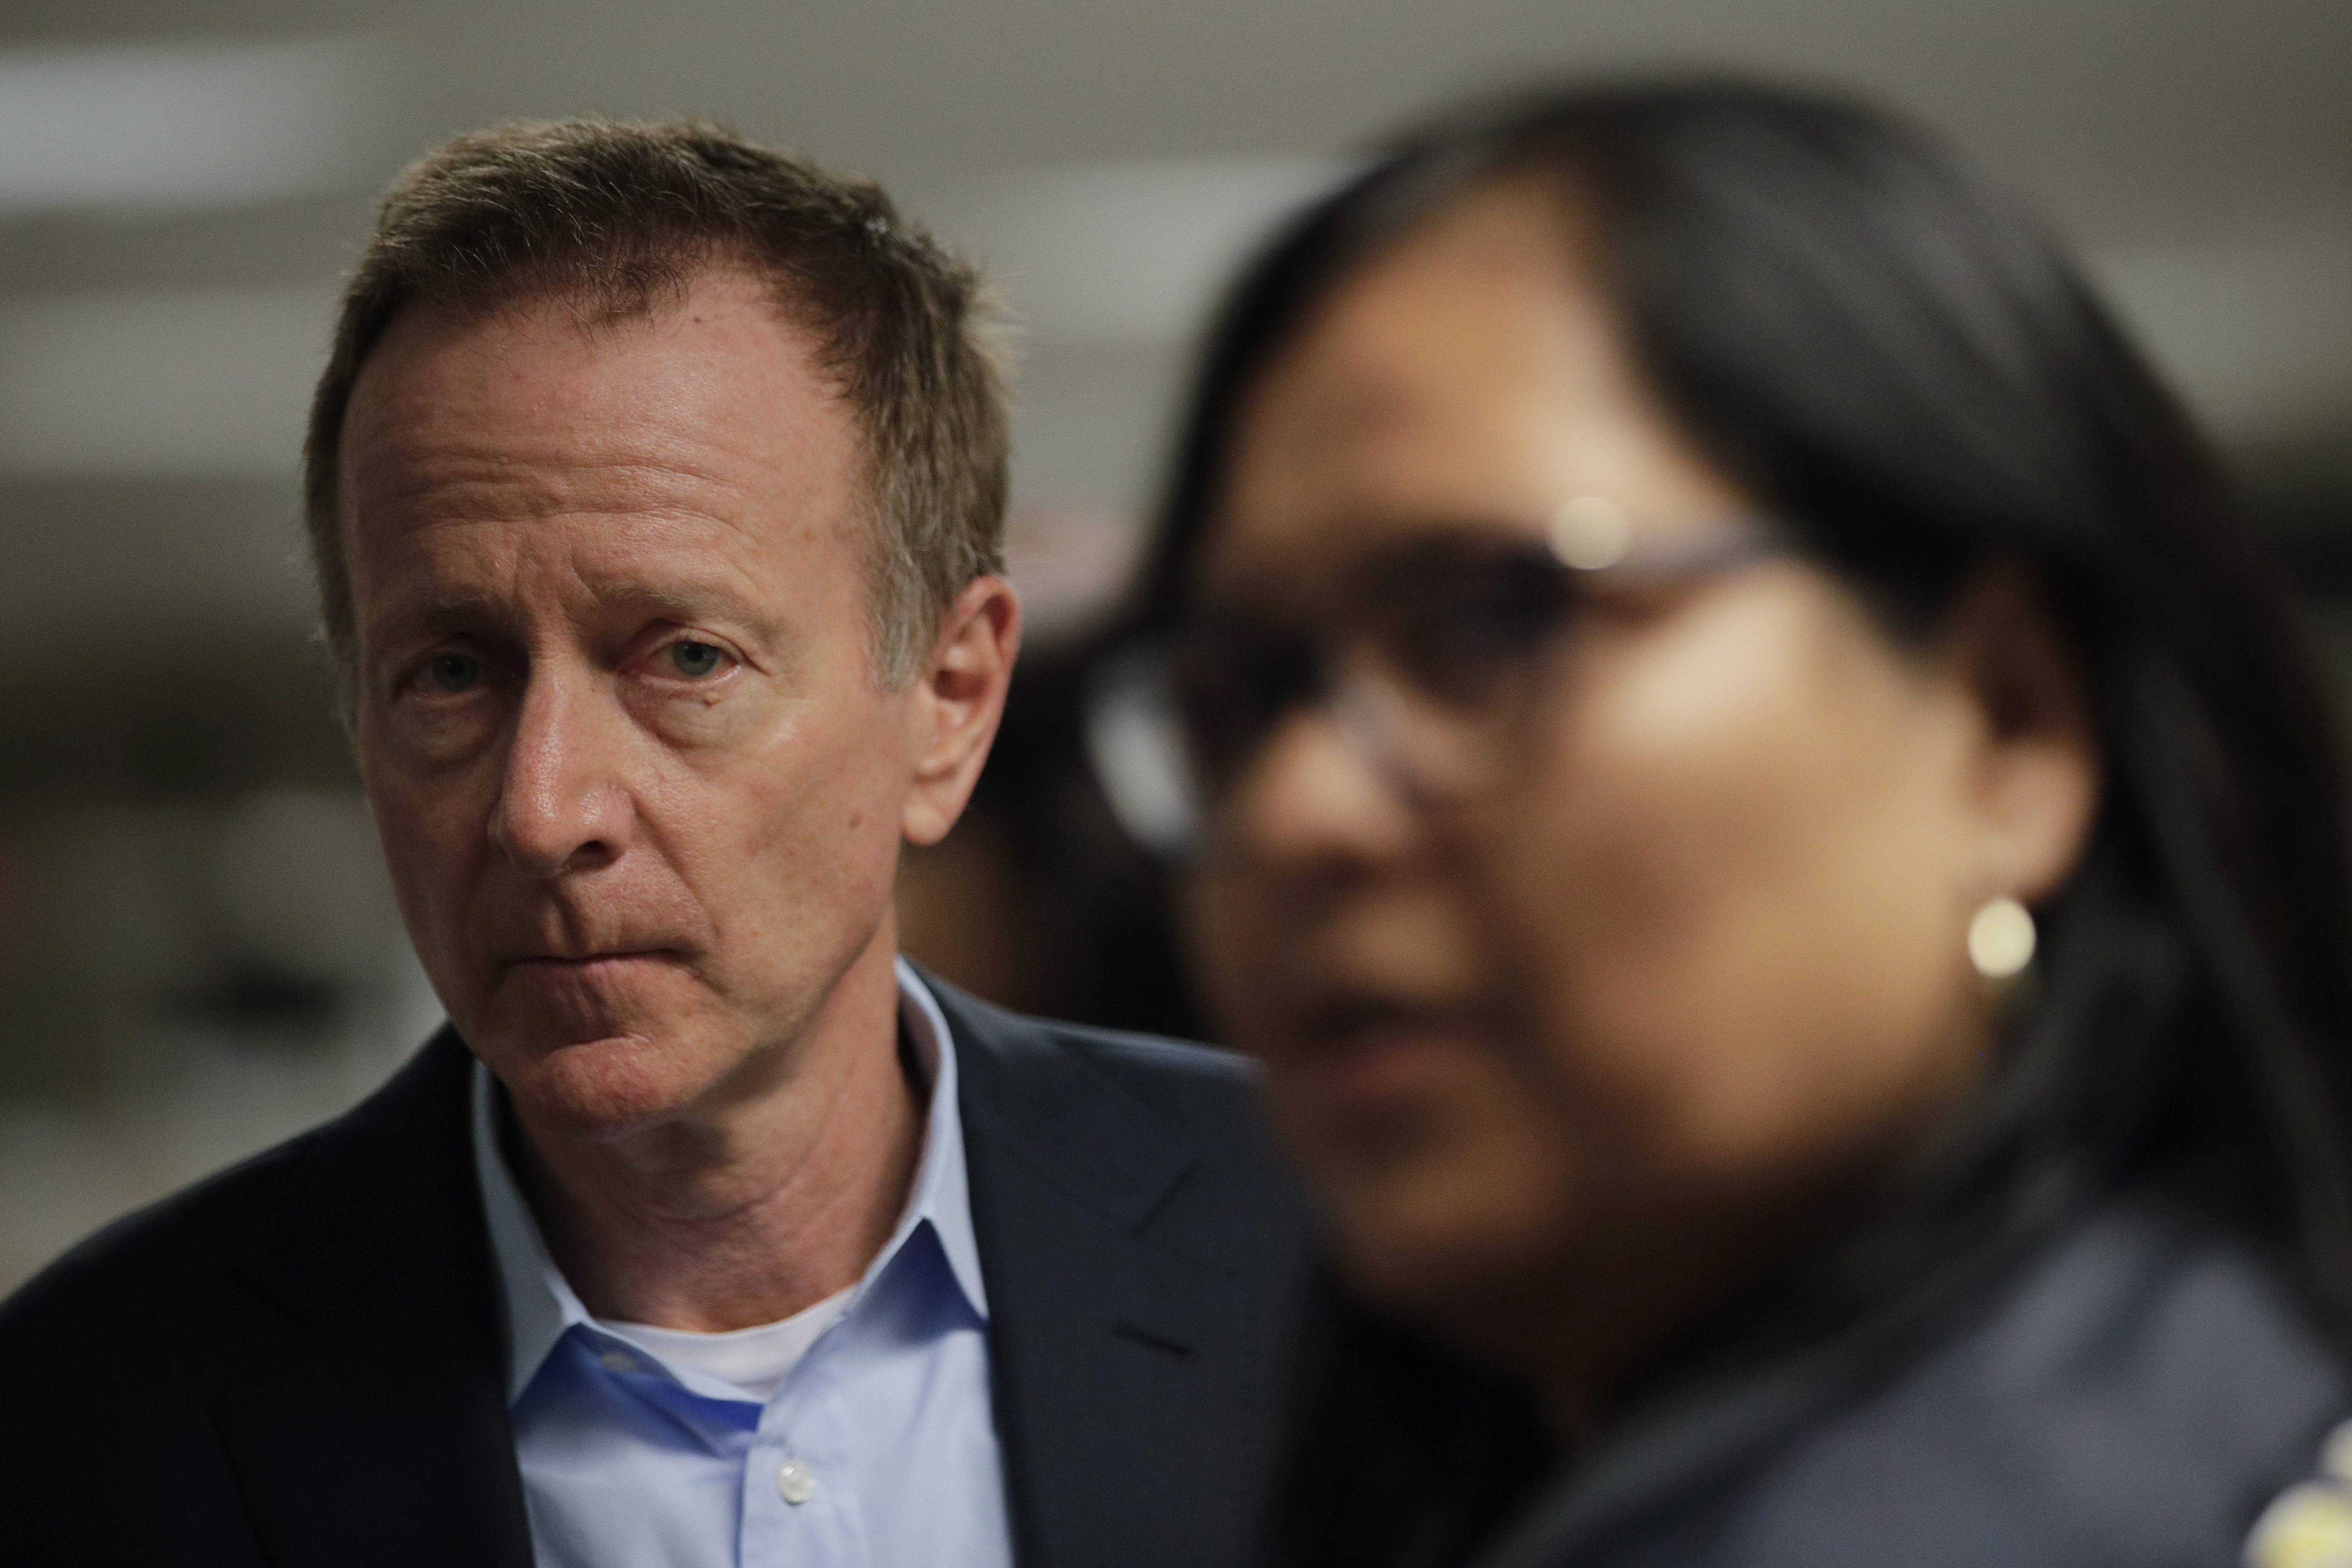 Los Angeles Unified School District Superintendent Austin Beutner, left, and board president Monica Garcia wait in the hallway for a news conference at the LAUSD headquarters, Jan. 15, 2019, in Los Angeles.